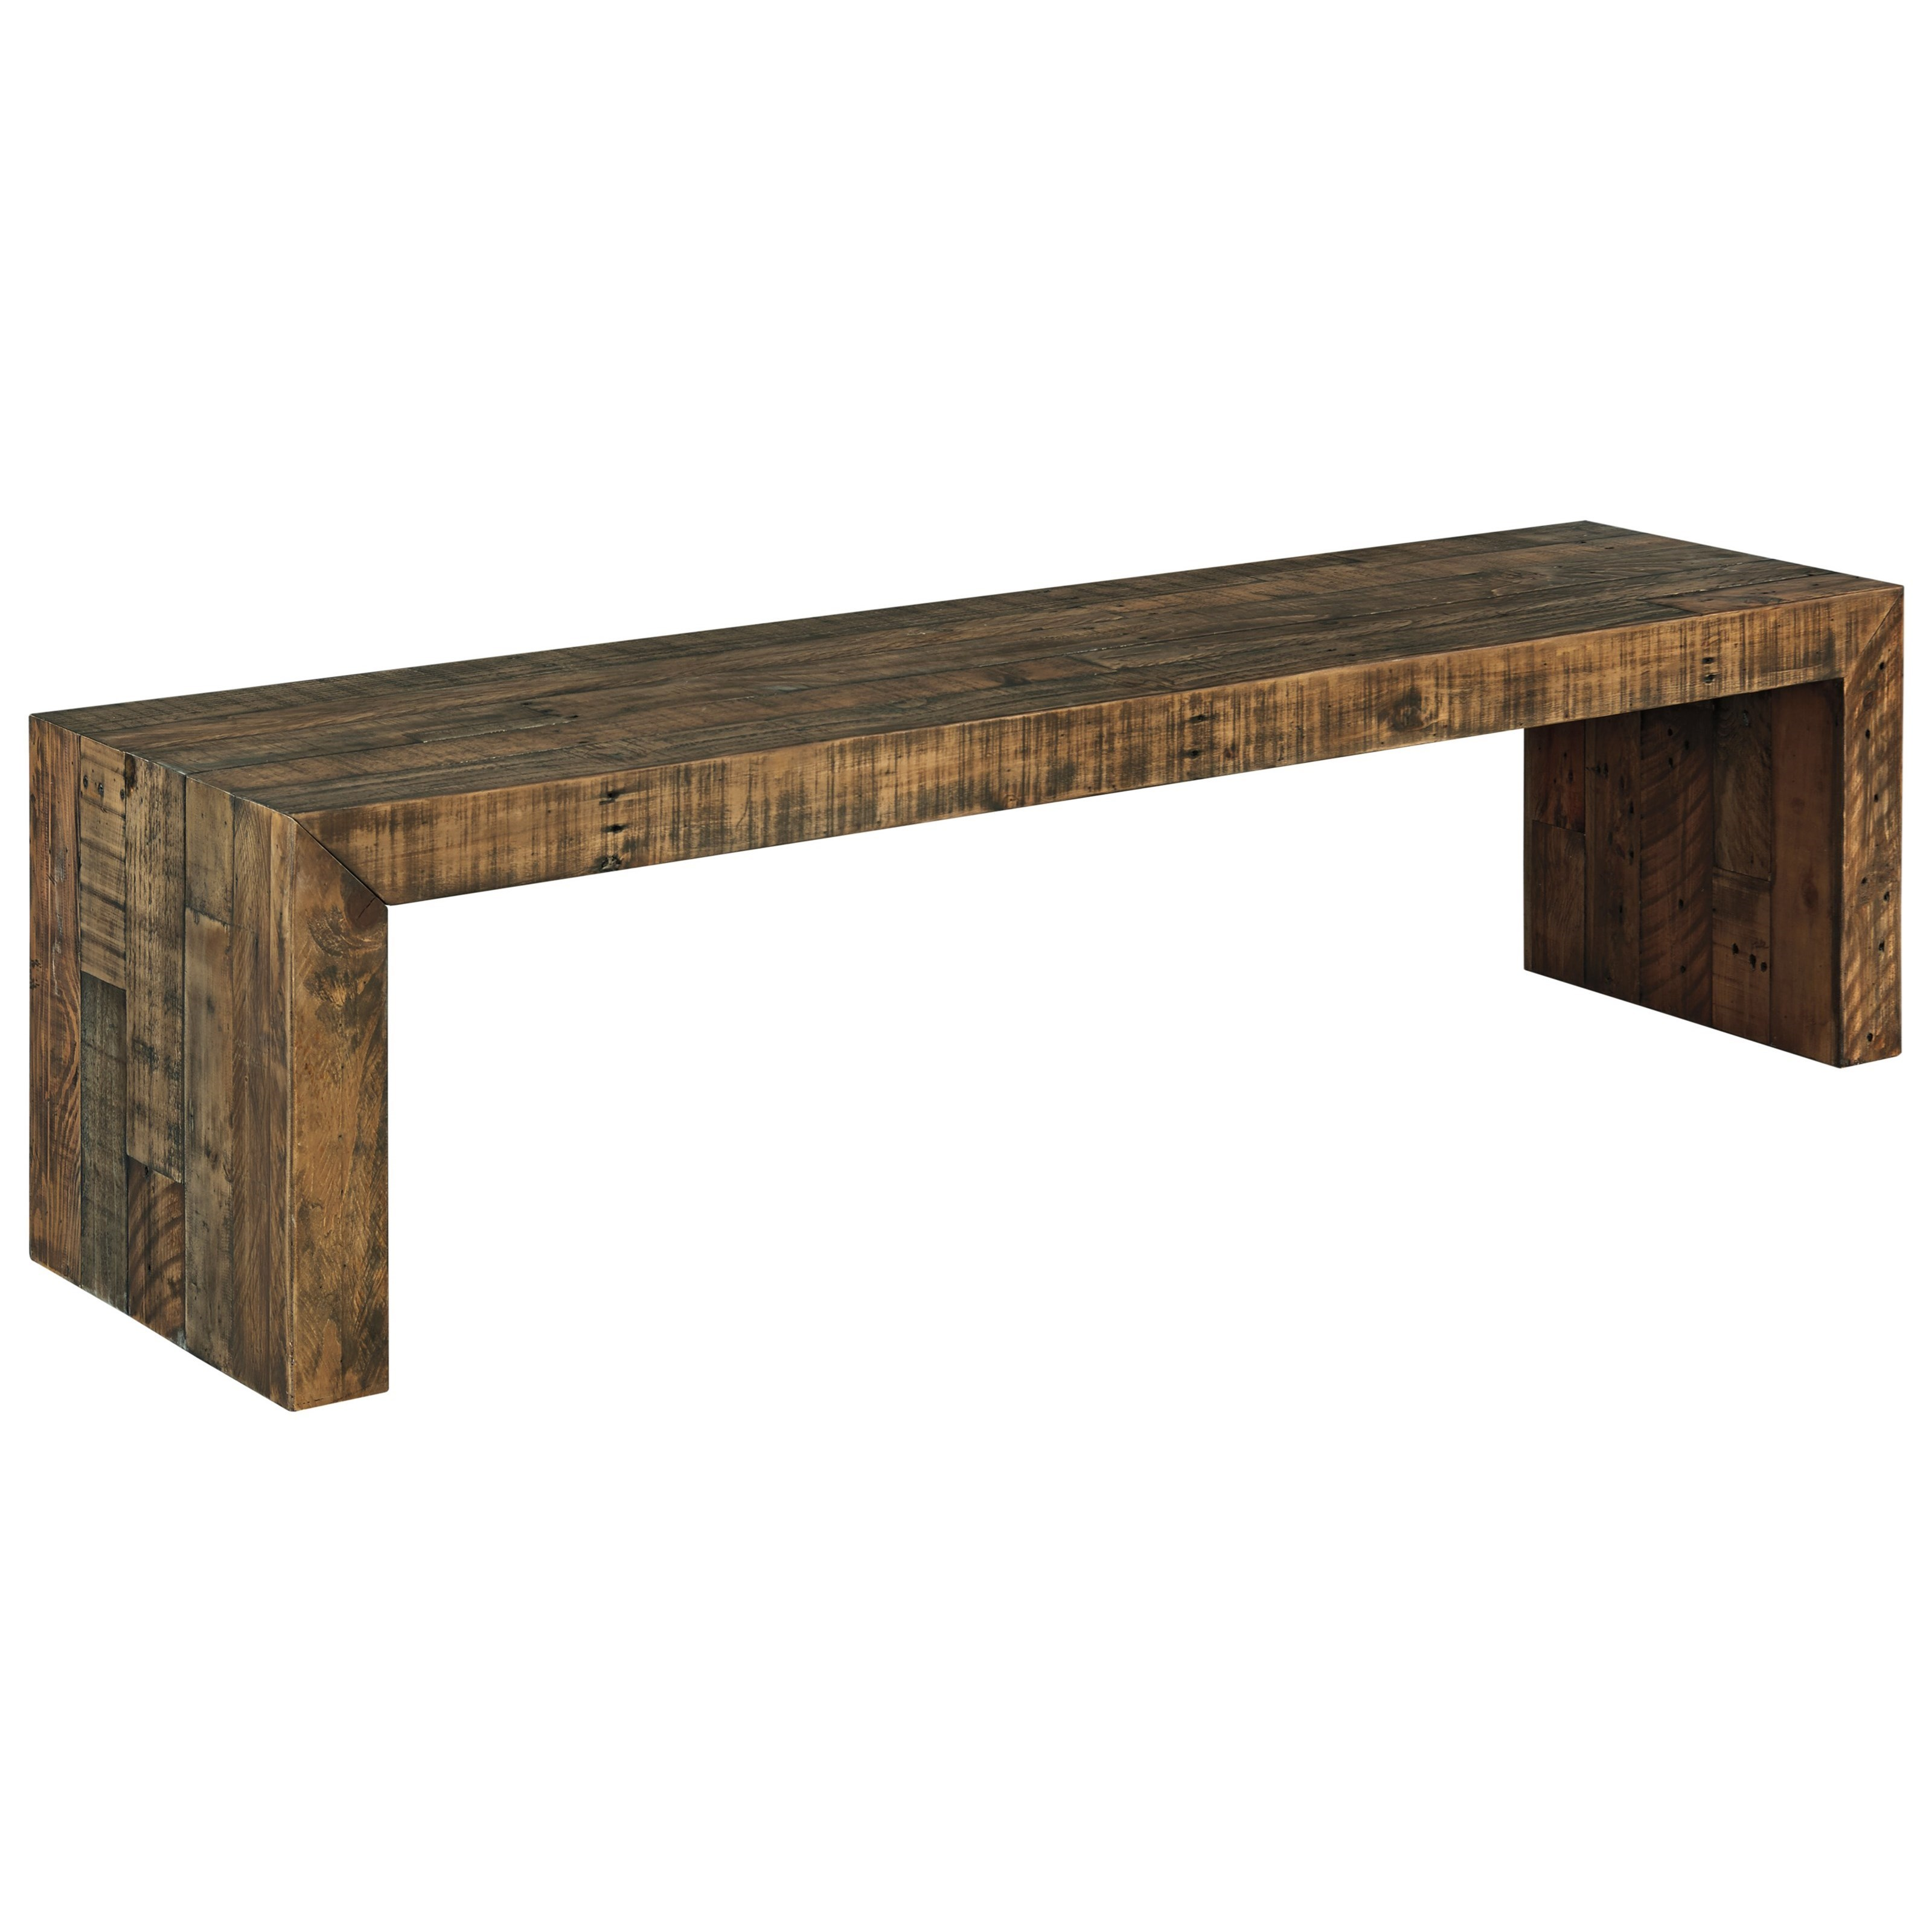 Sommerford Large Dining Room Bench by Ashley (Signature Design) at Johnny Janosik